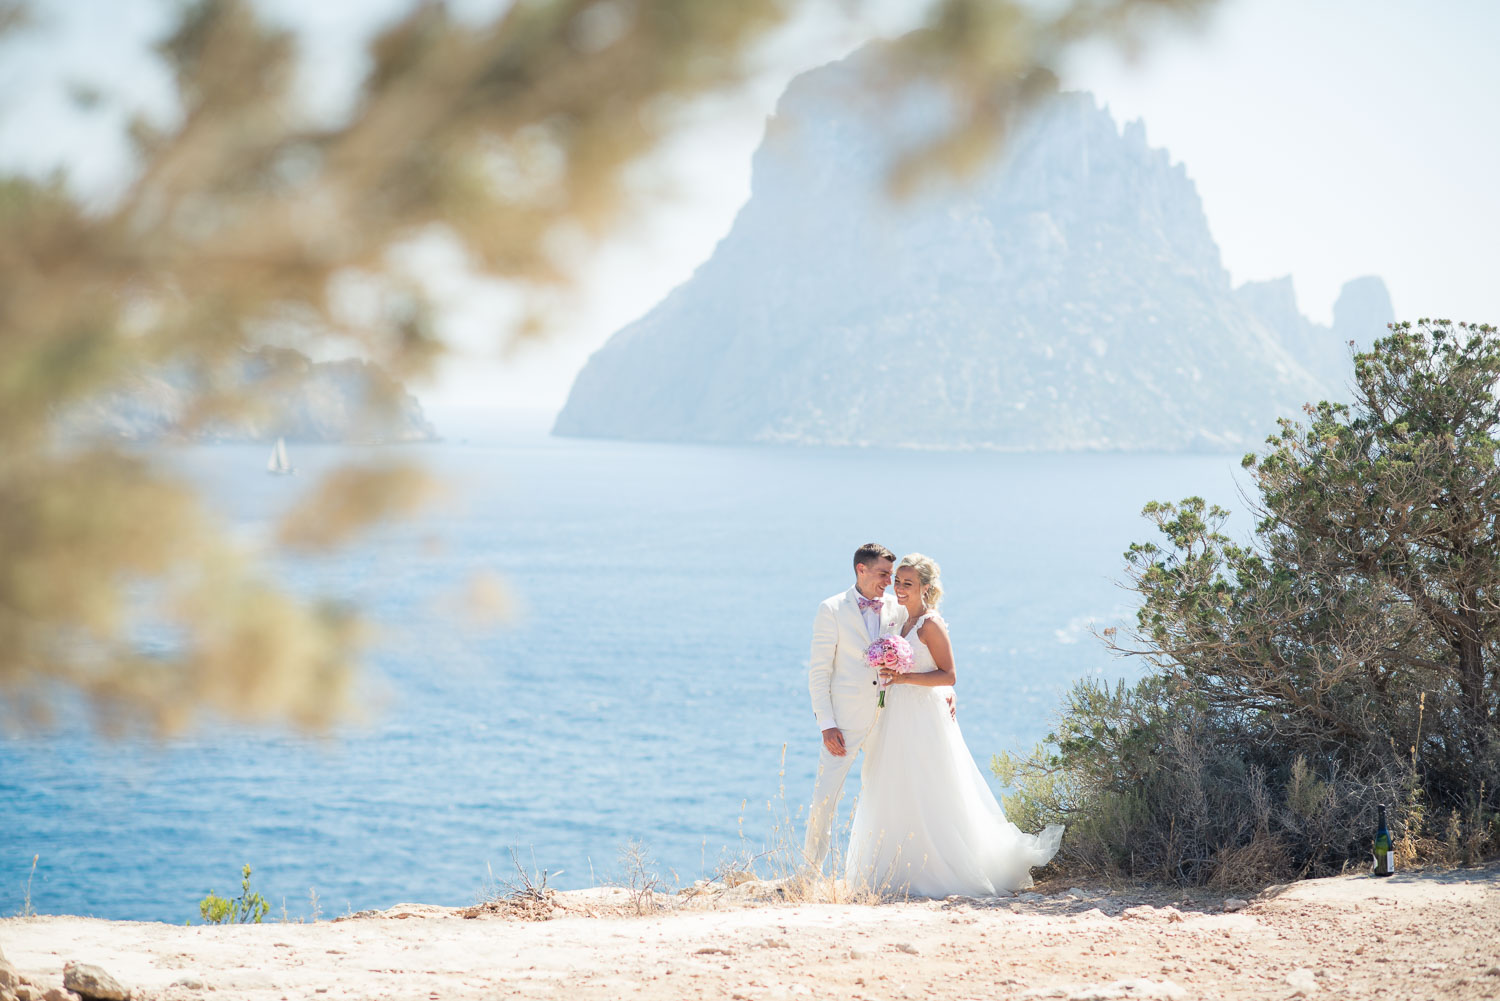 Es Vedra and the coupe